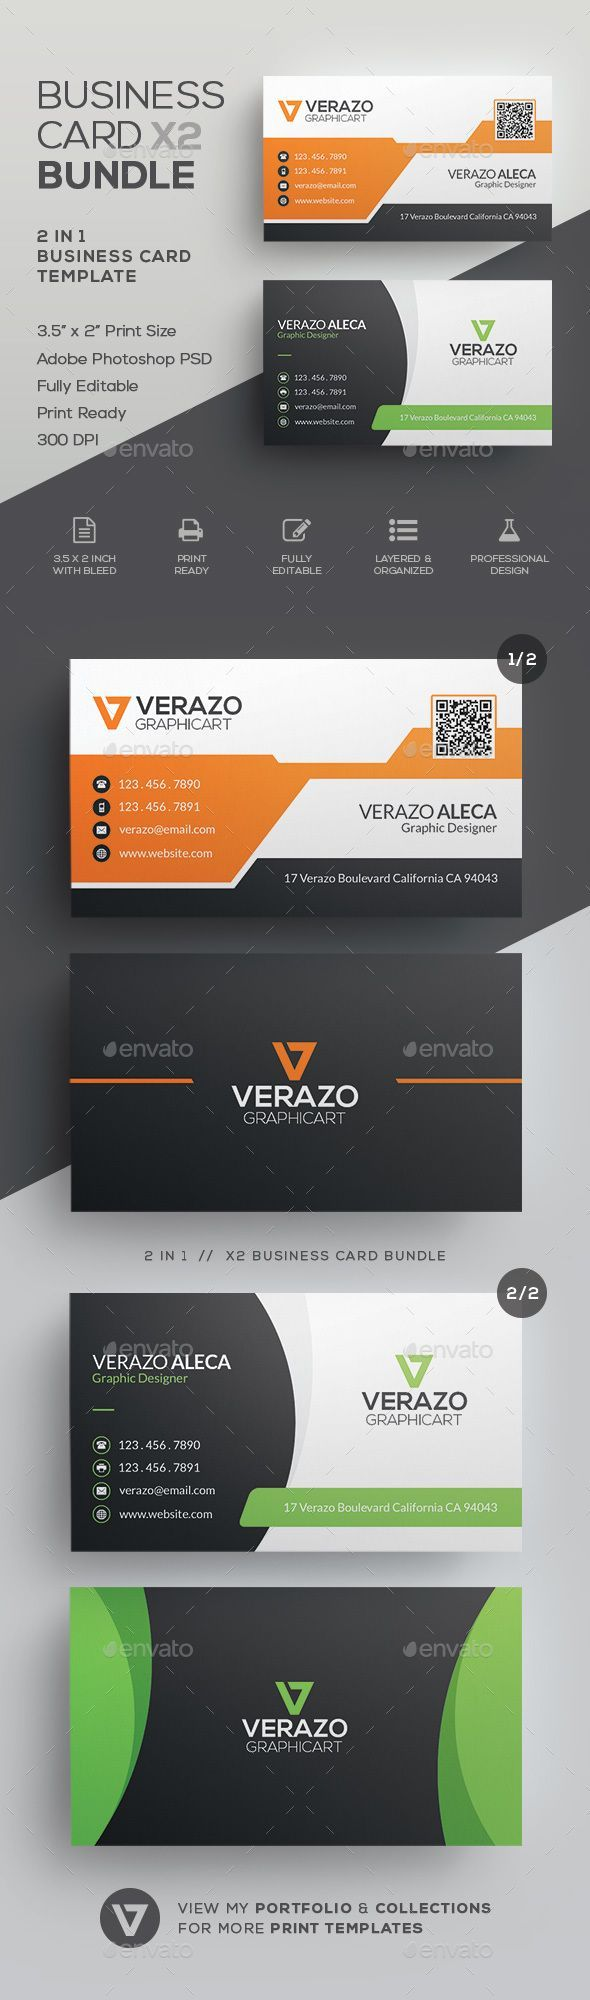 Business Card Bundle Corporate Business Cards Download Here - 2 x 35 business card template